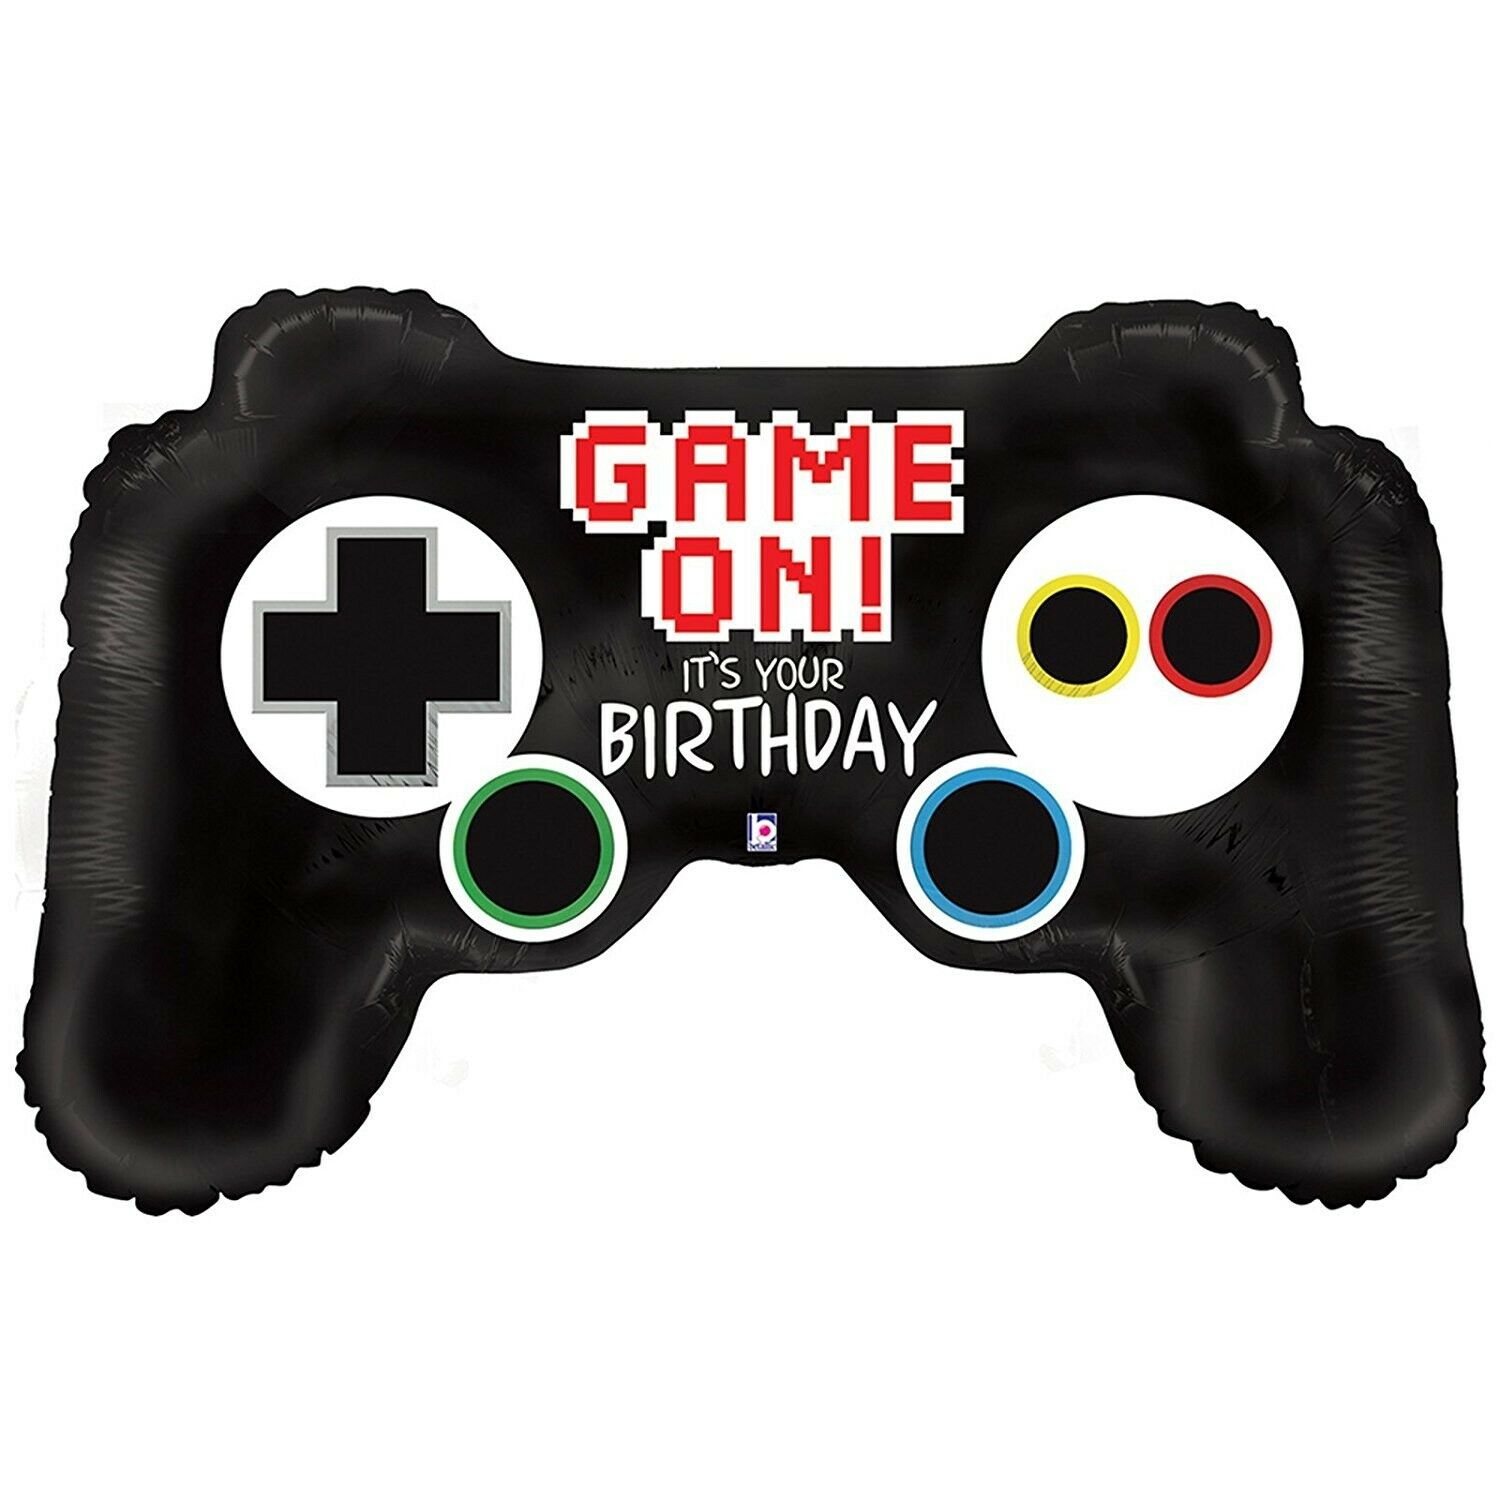 Epic Video Birthday Bouquet Foil Mylar Balloon Gaming Playstation Controllers For Sale Online Ebay